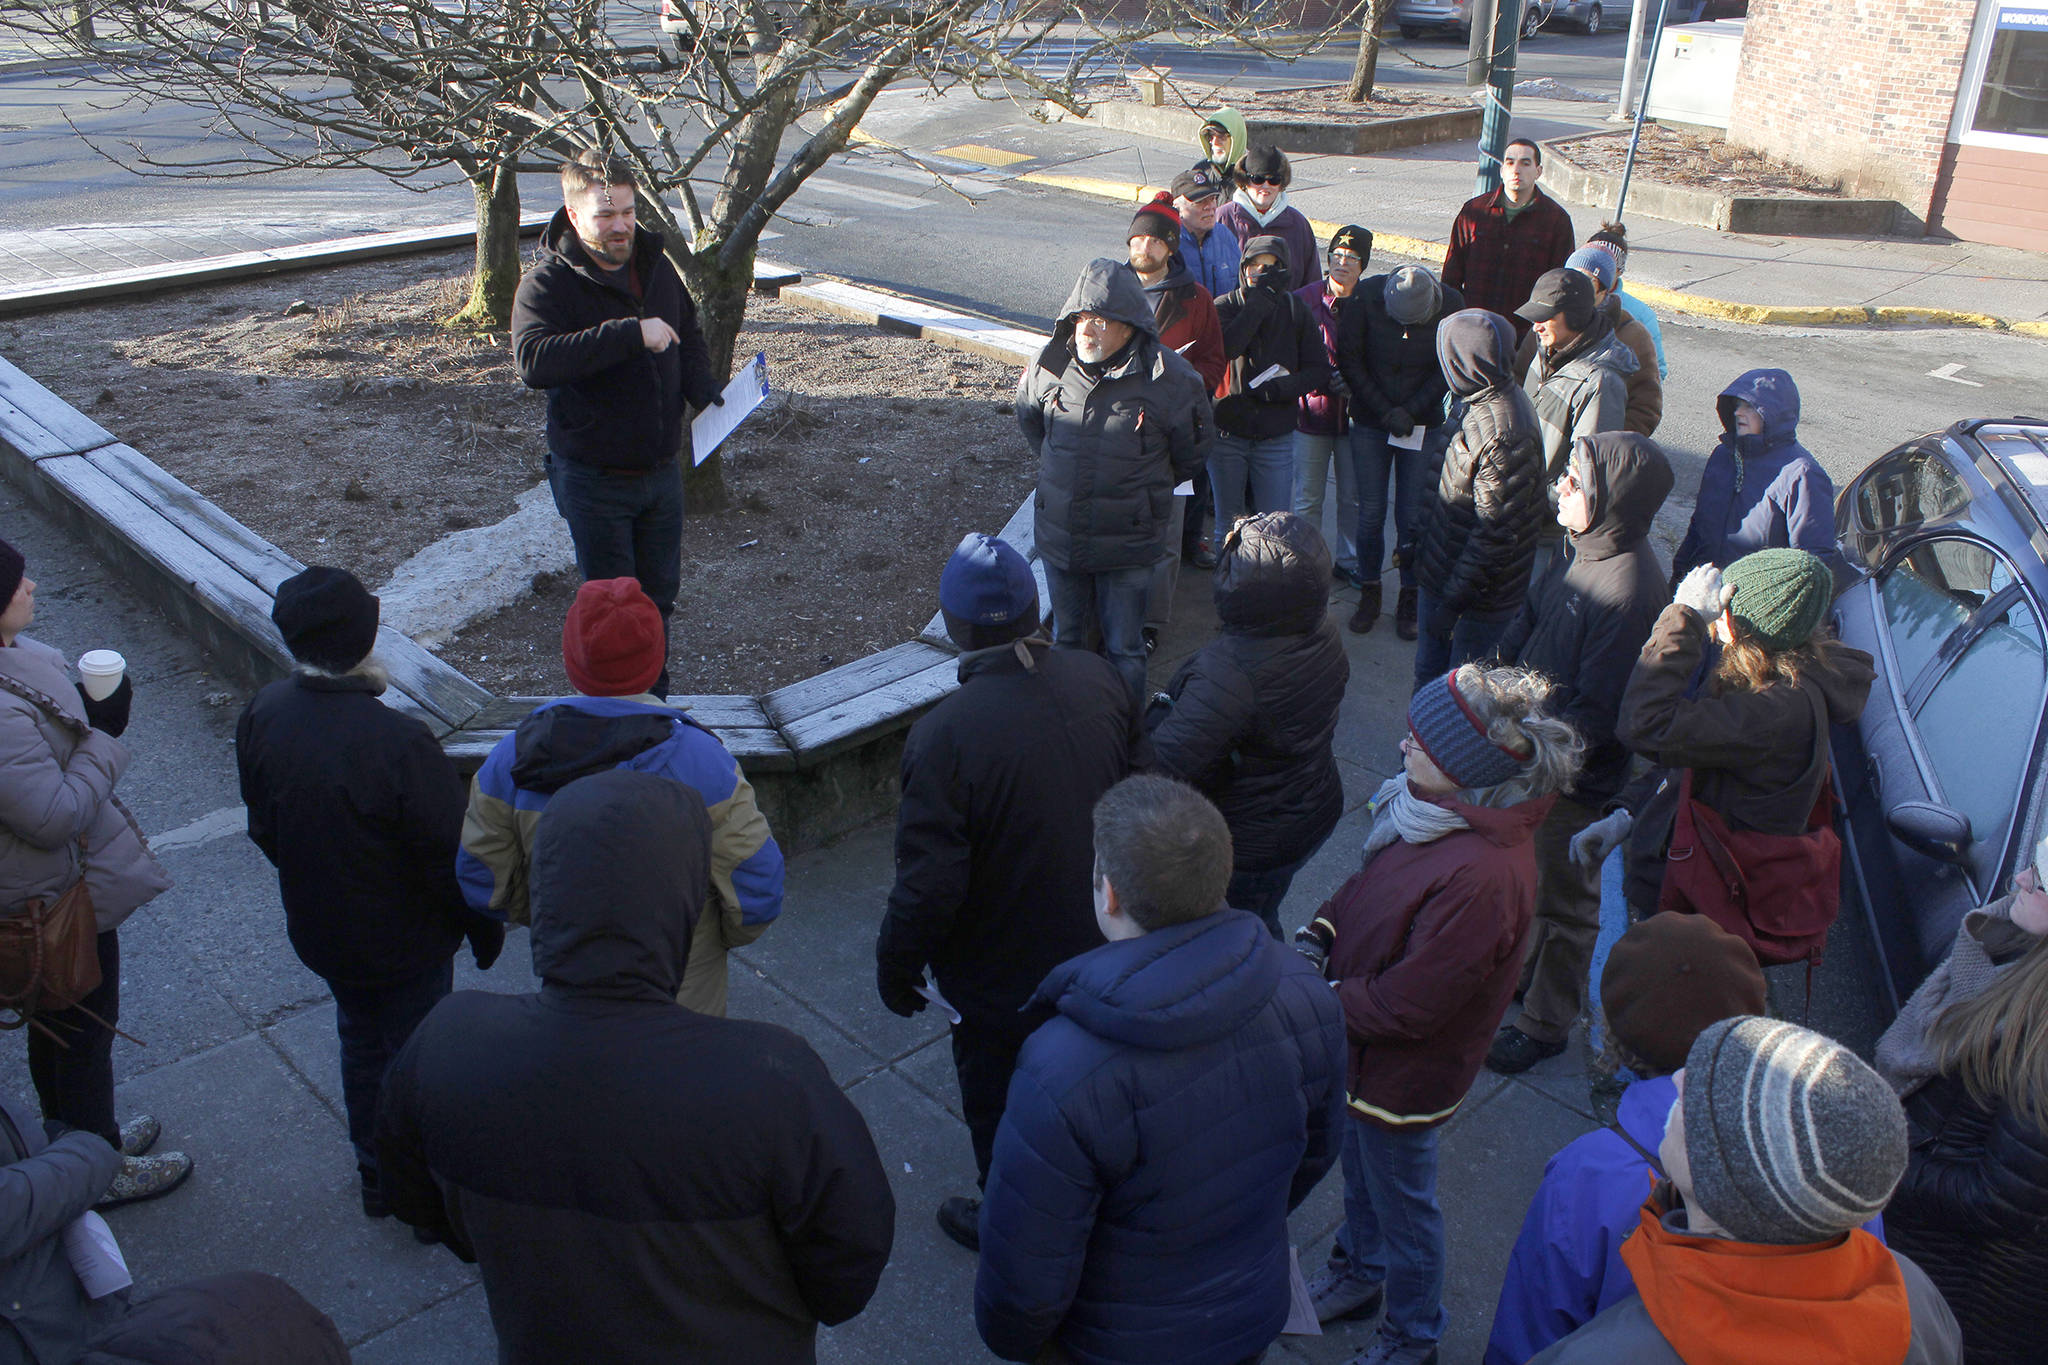 Zane Jones from MRV Architects speaks to attendees at a Blueprint Downtown walking tour on Saturday. Attendees shared their thoughts and experiences about downtown business, housing and public safety. (Alex McCarthy | Juneau Empire)